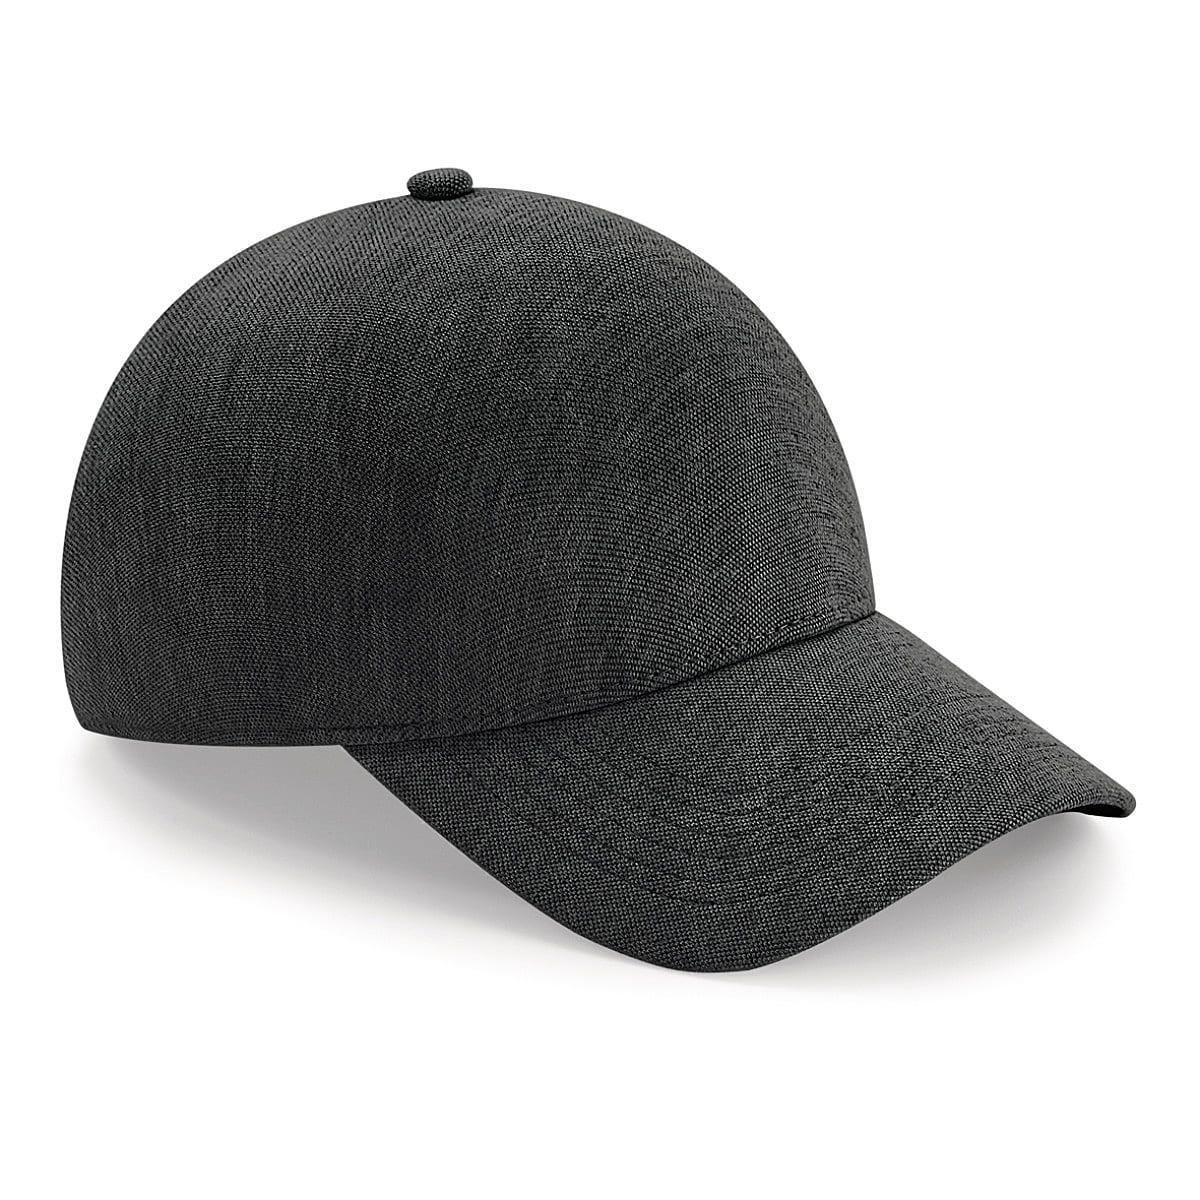 Beechfield Seamless Athleisure Cap in Heather Graphite (Product Code: B556)